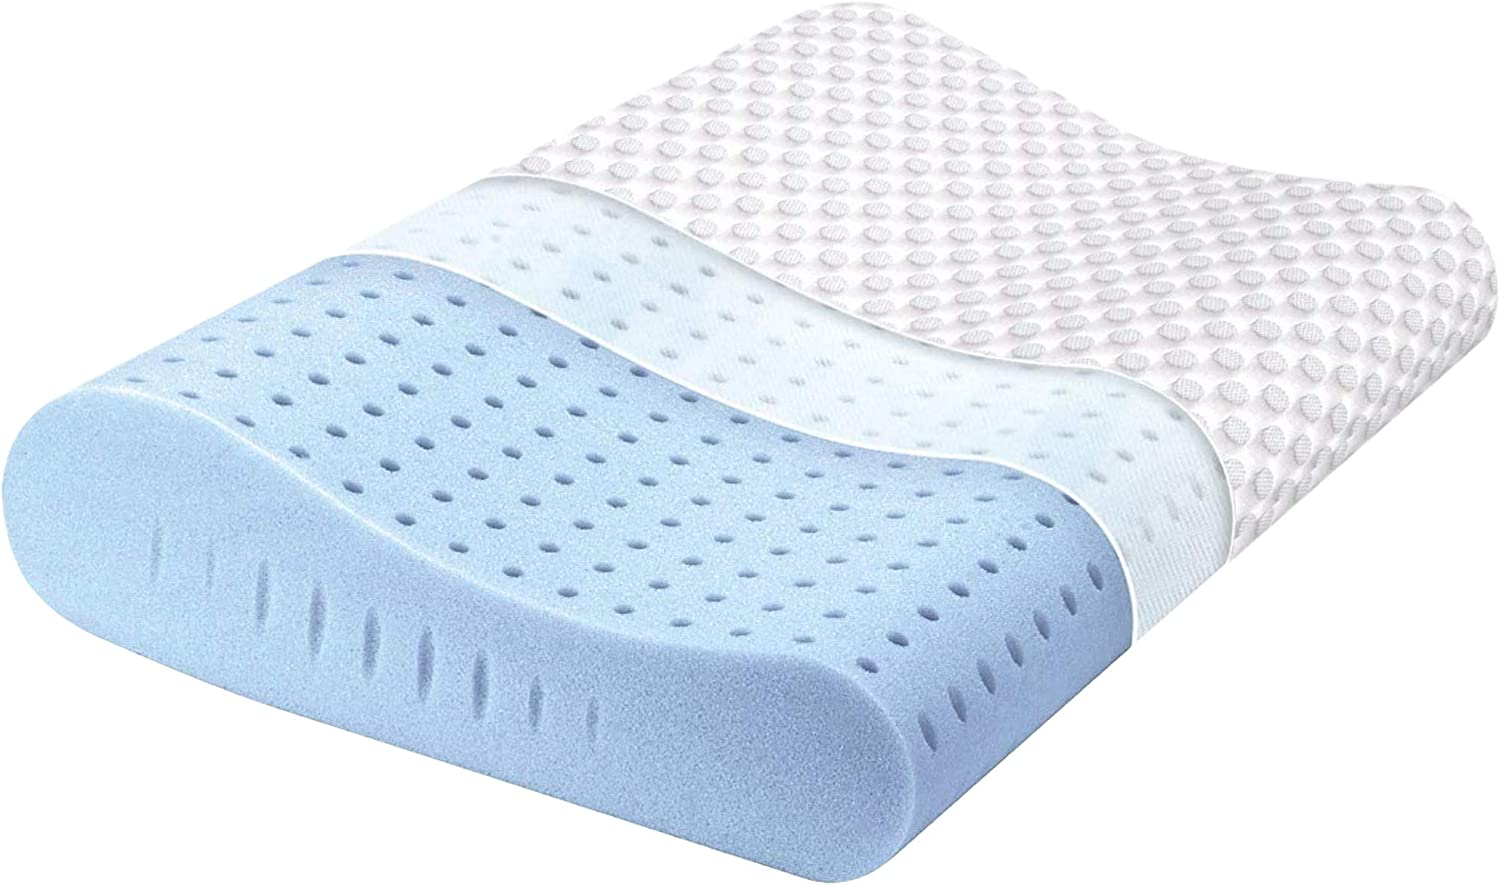 Milemont Memory Foam Pillow, Cervical Pillow, Orthopedic Contour Pillow Support for Back, Stomach, Side Sleepers, Bed Pillows for Sleeping, CertiPUR-US